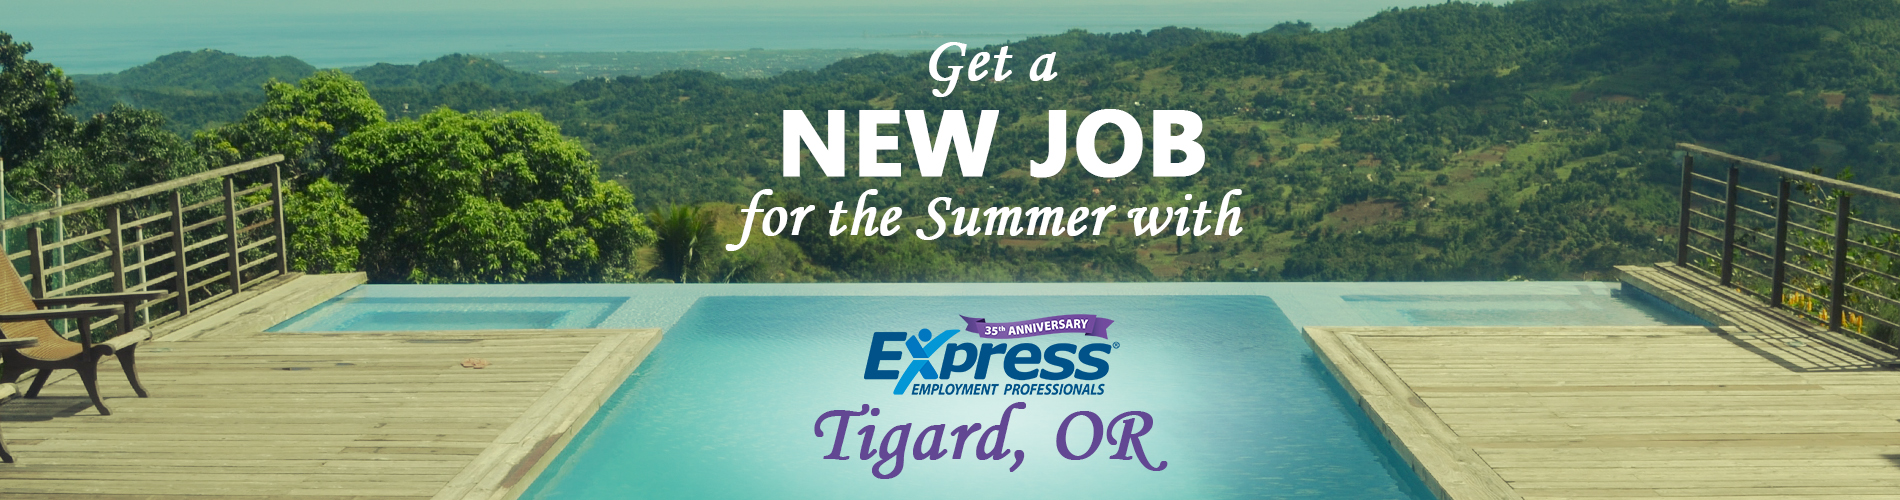 Summer Jobs in Tigard, OR - Express Employment Professionals